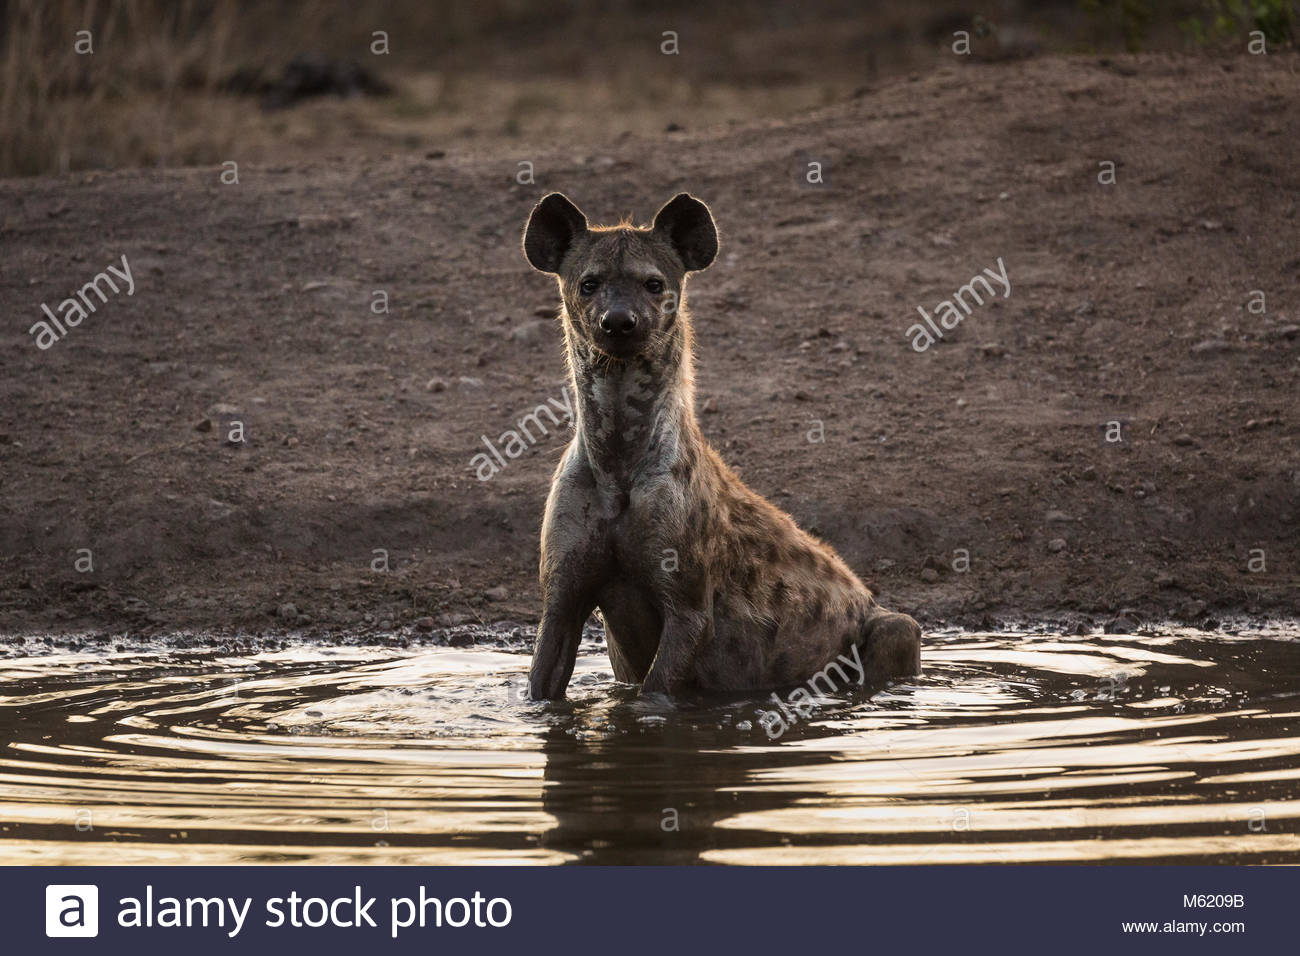 A Spotted hyena, Crocuta crocuta, sitting in a water hole at dusk. - Stock Image